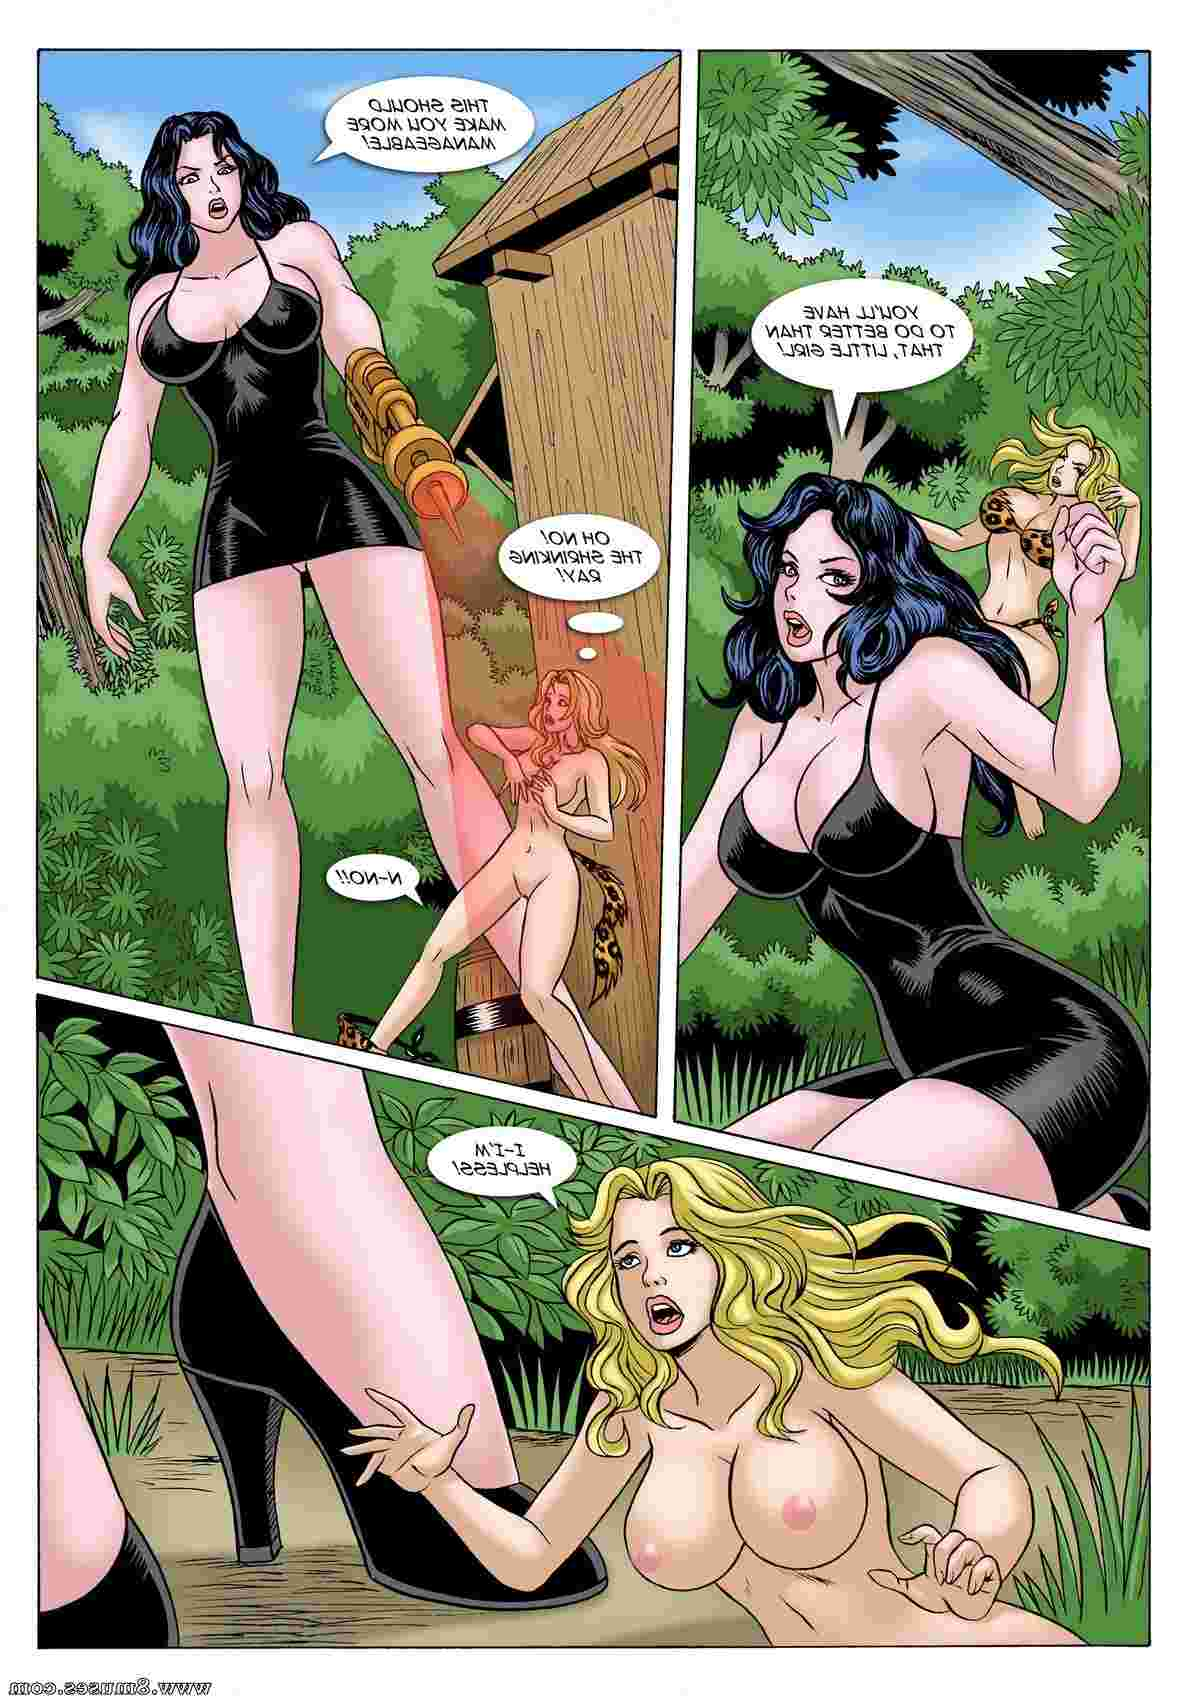 DreamTales-Comics/Pygmy-Queen Pygmy_Queen__8muses_-_Sex_and_Porn_Comics_11.jpg